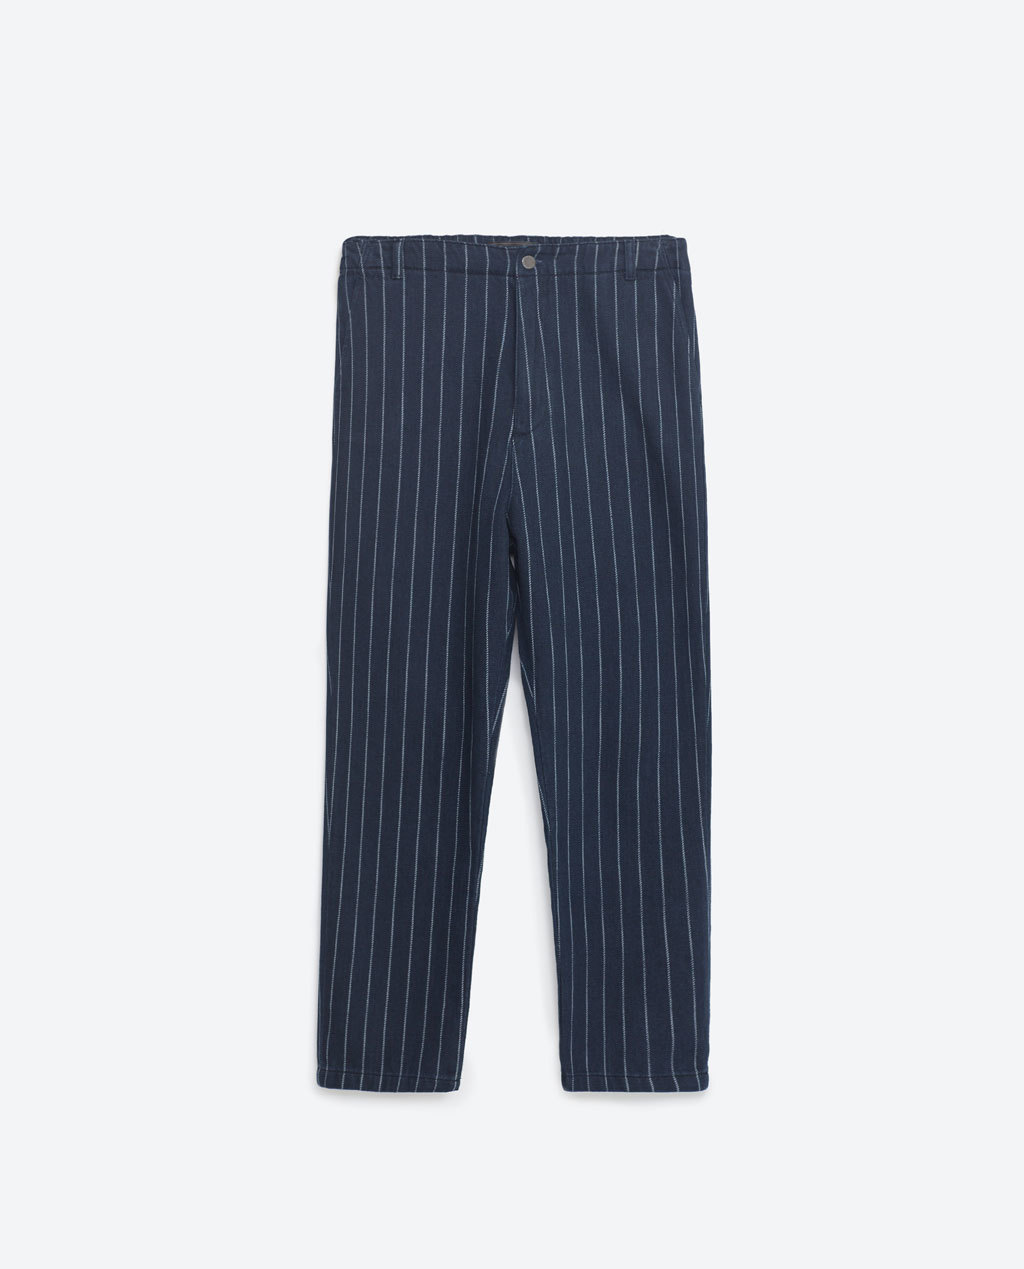 Striped Masculine Jeans - style: straight leg; pattern: vertical stripes; waist: mid/regular rise; predominant colour: navy; secondary colour: light grey; length: ankle length; fibres: cotton - 100%; pattern type: fabric; texture group: other - light to midweight; occasions: creative work; pattern size: light/subtle (bottom); season: s/s 2016; wardrobe: highlight